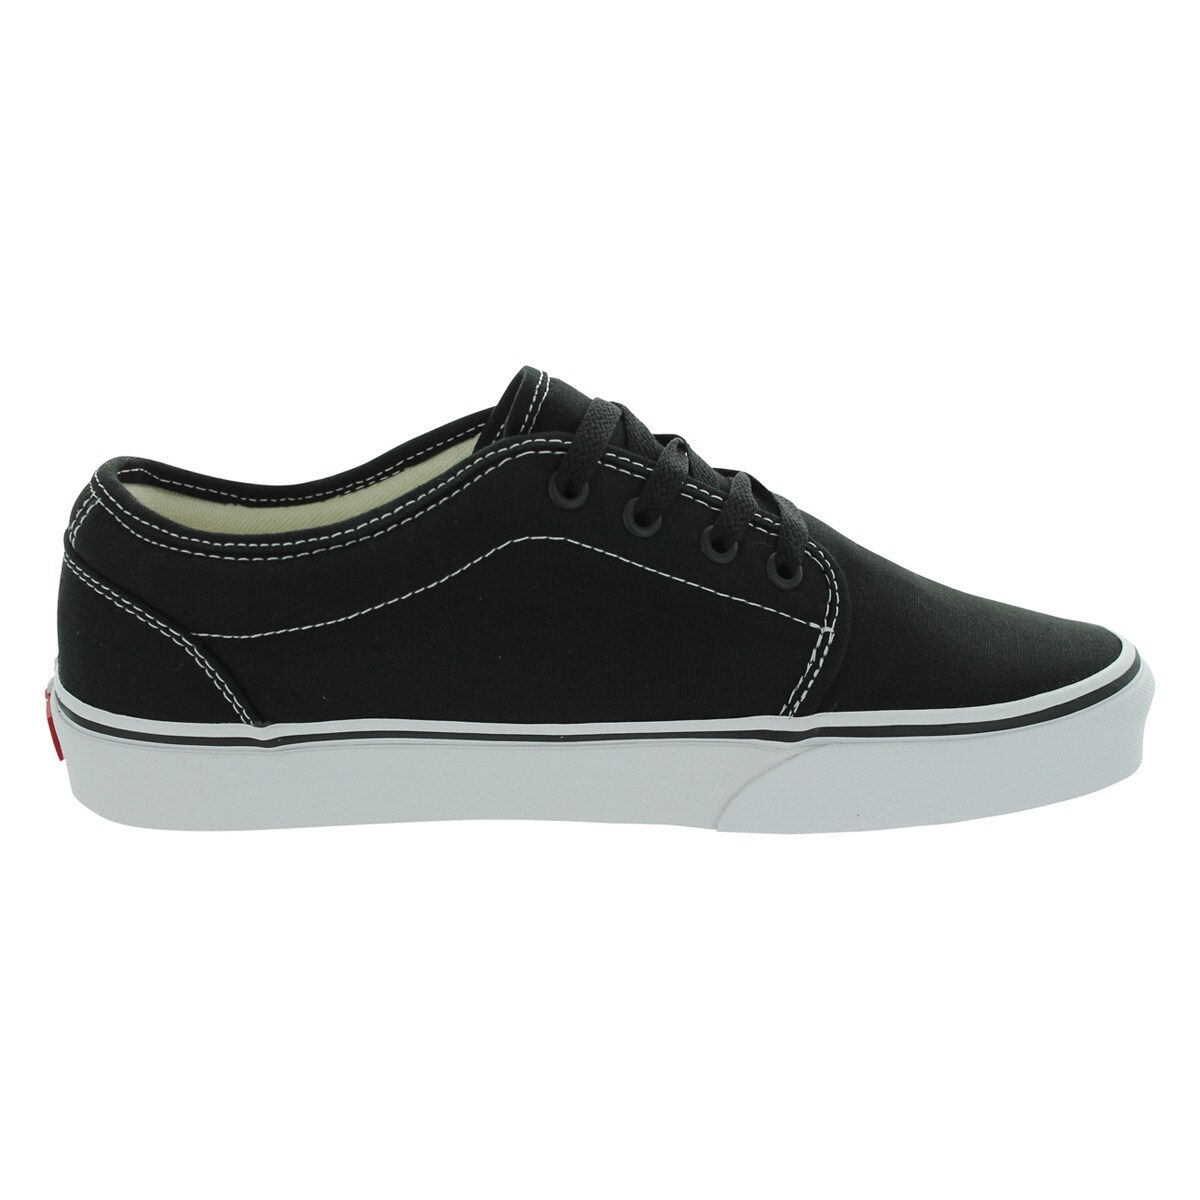 Shop Vans 106 Vulcanized Skate Shoes (Black White) - Free Shipping Today -  Overstock - 12328130 0845e34d1